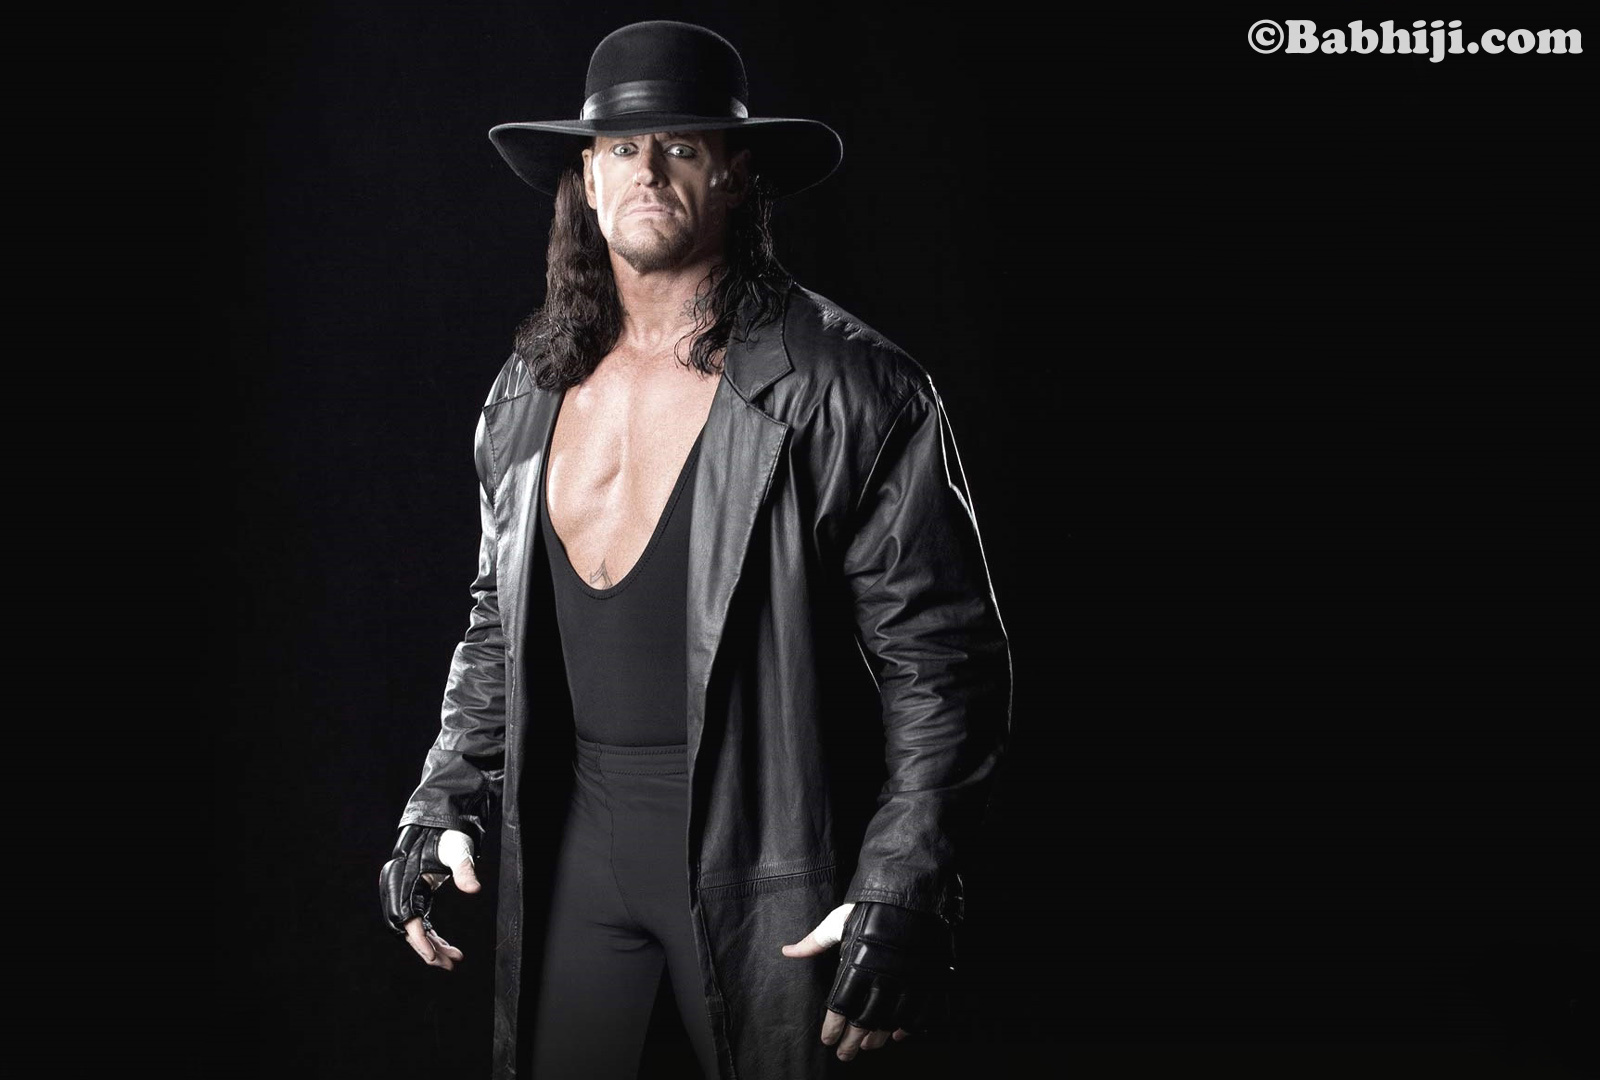 The Undertaker, The Undertaker Wallpaper, The Undertaker Photo, The Undertaker Images